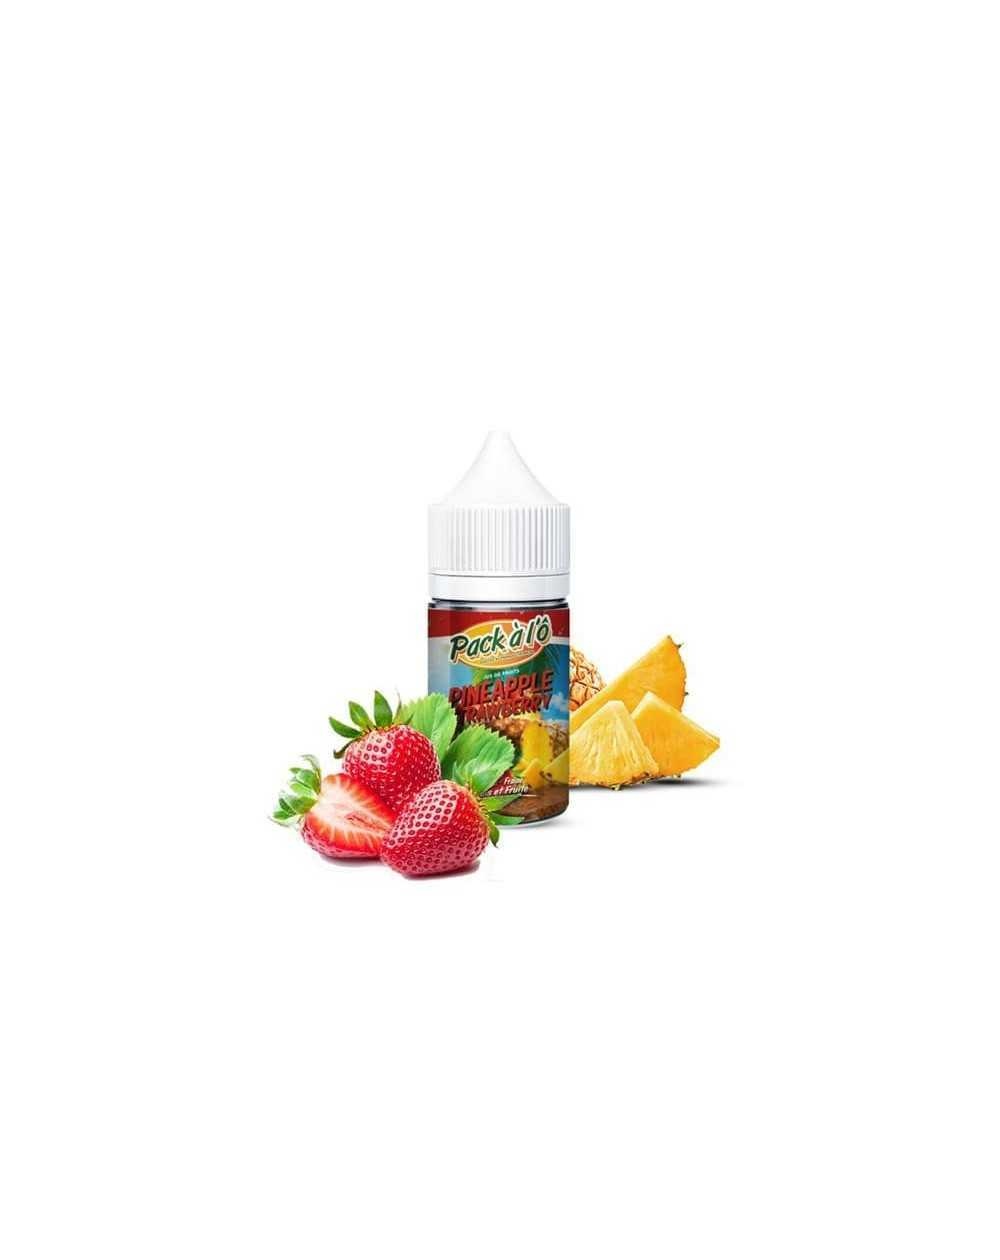 Concentrated aroma Pineapple Strawberry 30ml - Pack à l'Ô-1